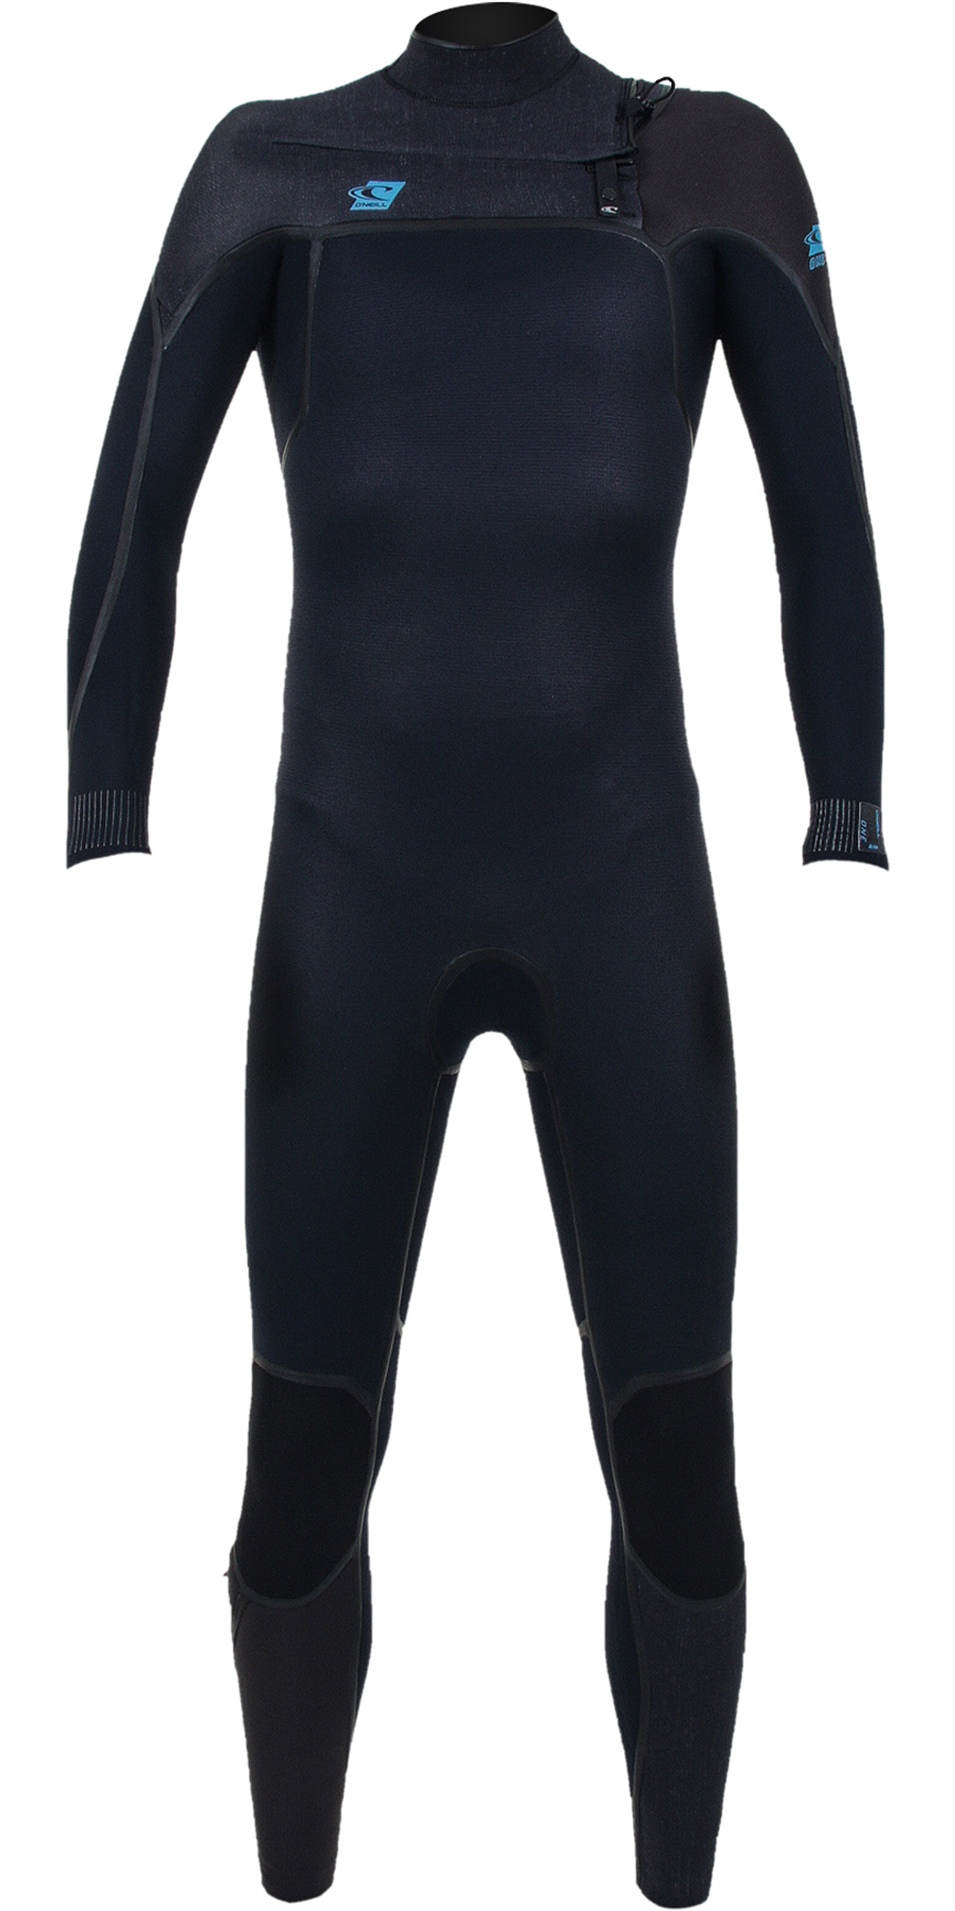 2020 O'Neill Youth Psycho One 5/4mm Chest Zip Wetsuit Abyss / Acid Wash / Raven 4995